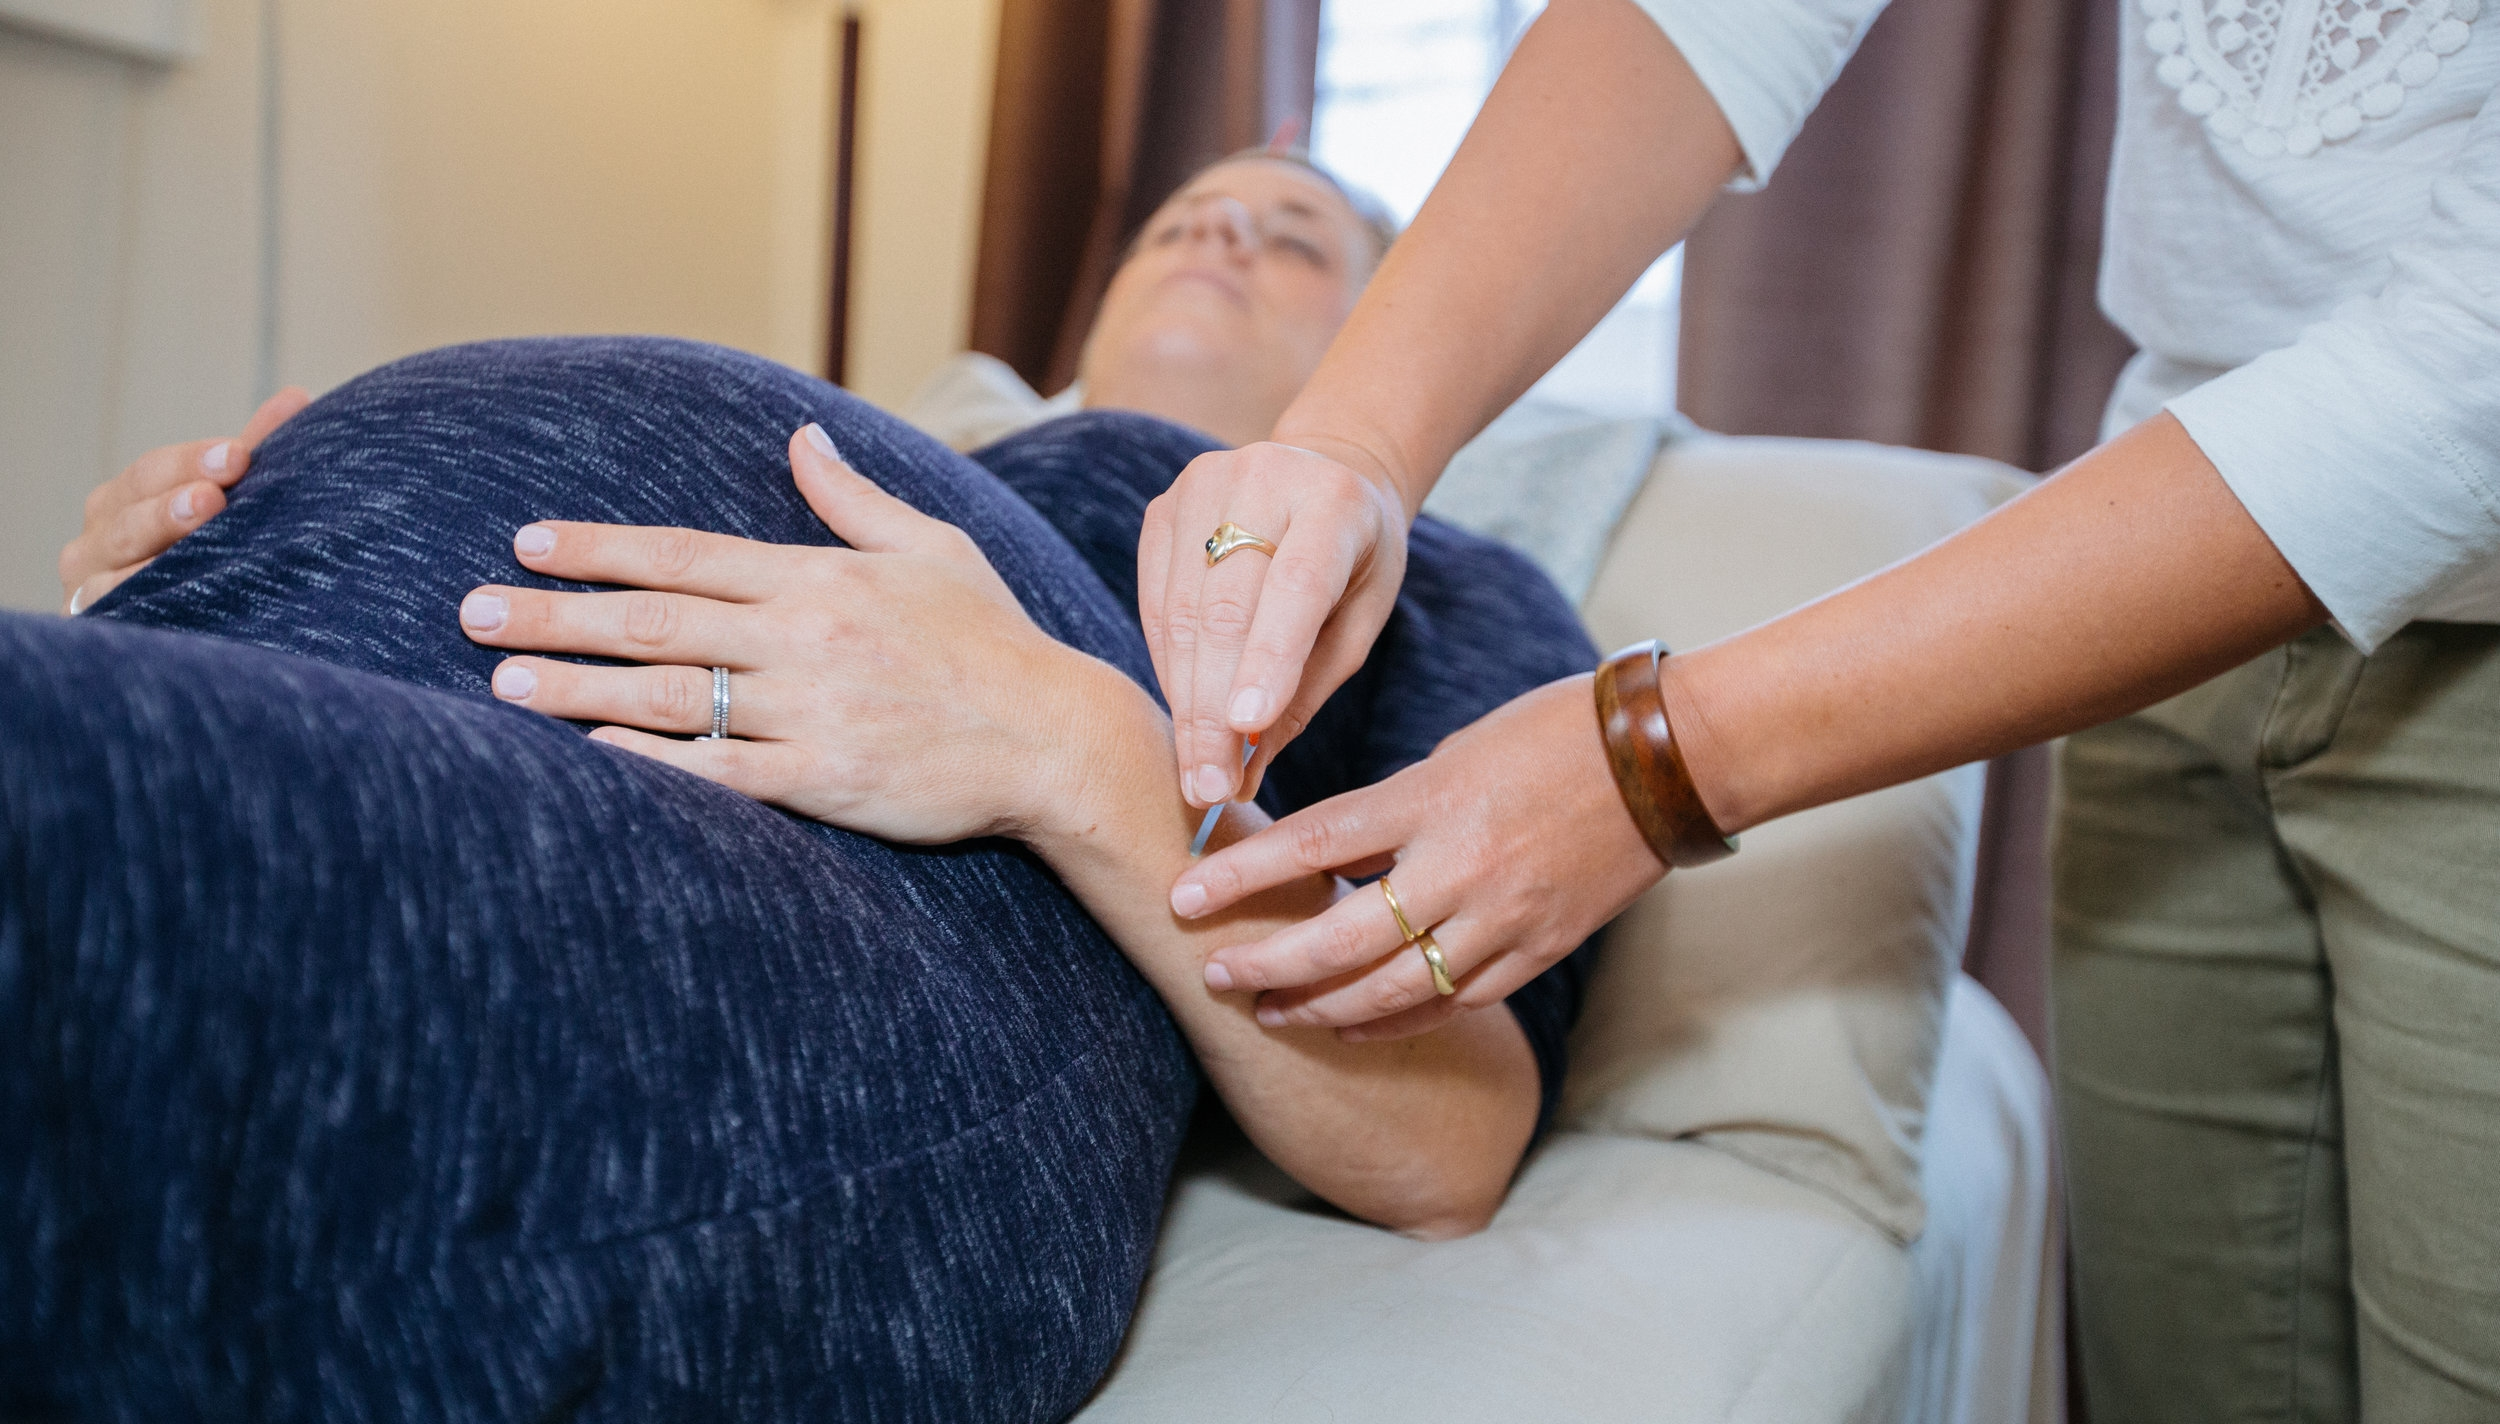 Acupuncture - At Seaside Family Acupuncture, we draw from ancient medicine, modern practices and research to offer you the most natural, safe and effective acupuncture. Each session is individually tailored to your needs with a holistic approach to your well-being.